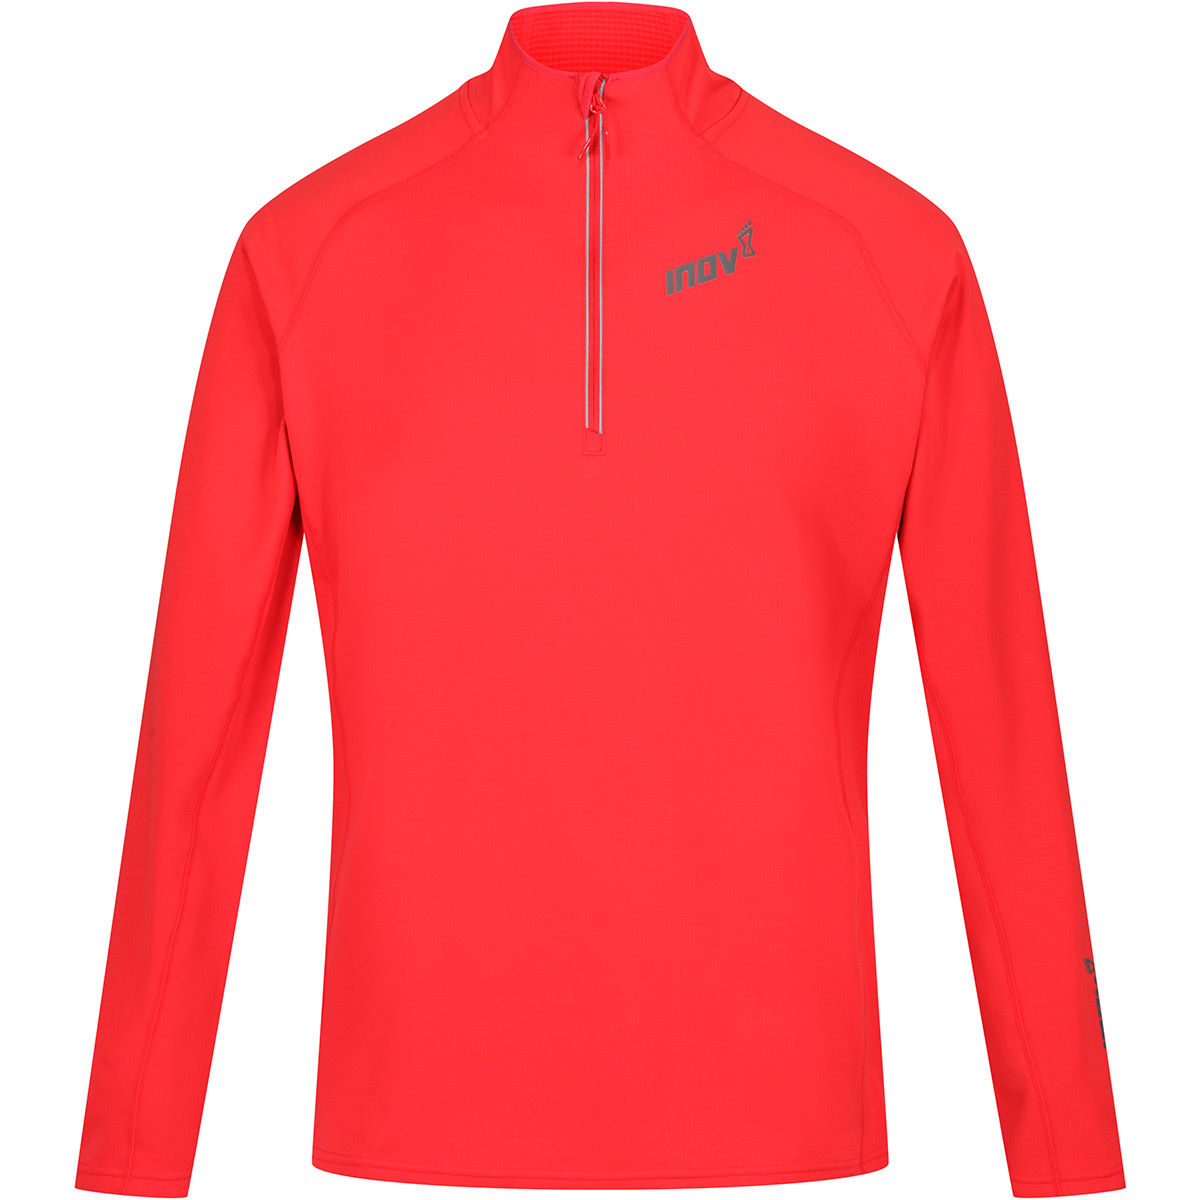 Inov-8 Technical Long Sleeve Running Top - Extra Small Red